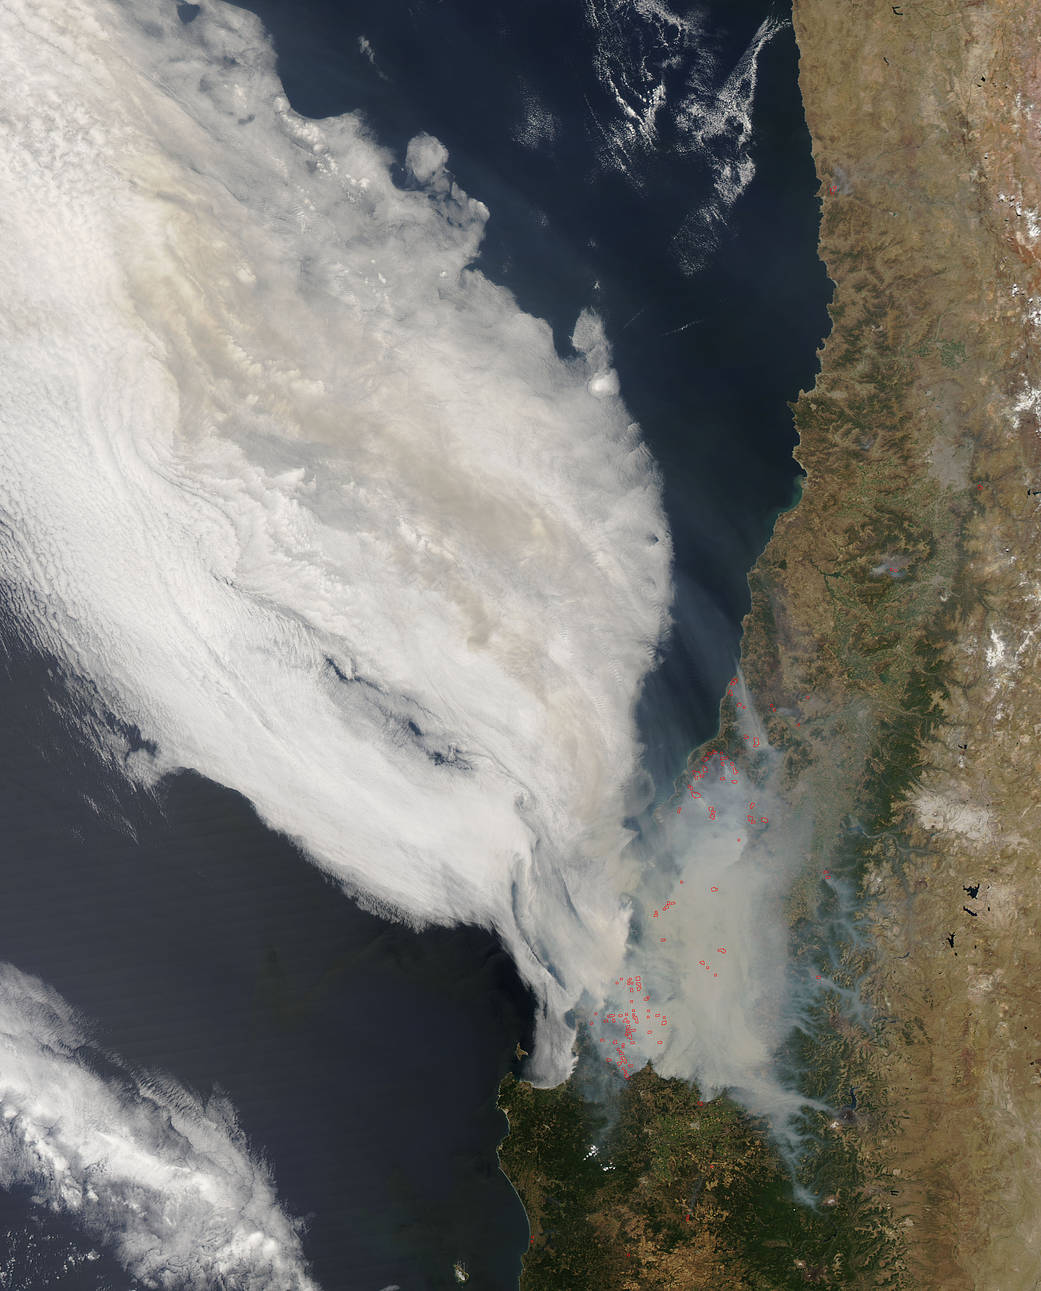 Fires and smoke in Central Chile